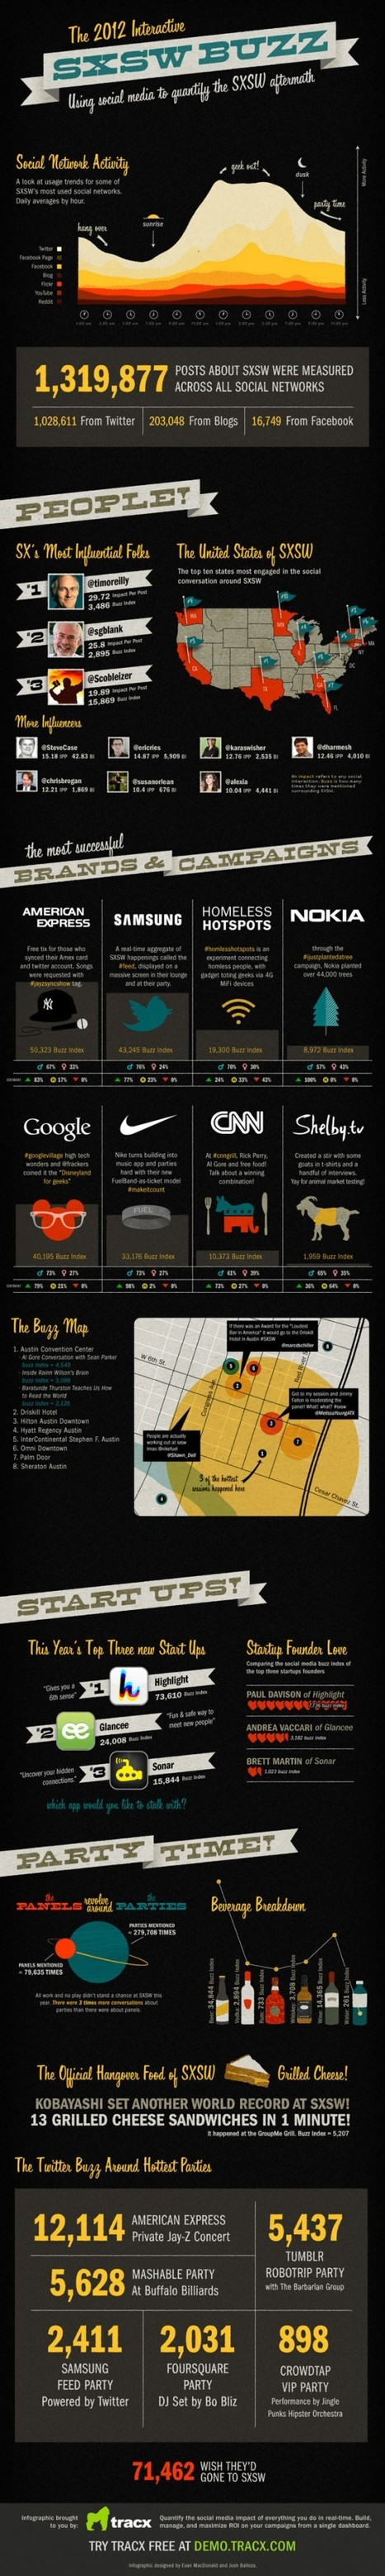 The Ultimate SXSW infographic: The most popular influencers, parties, brand campaigns and more   Amplified Events   Scoop.it